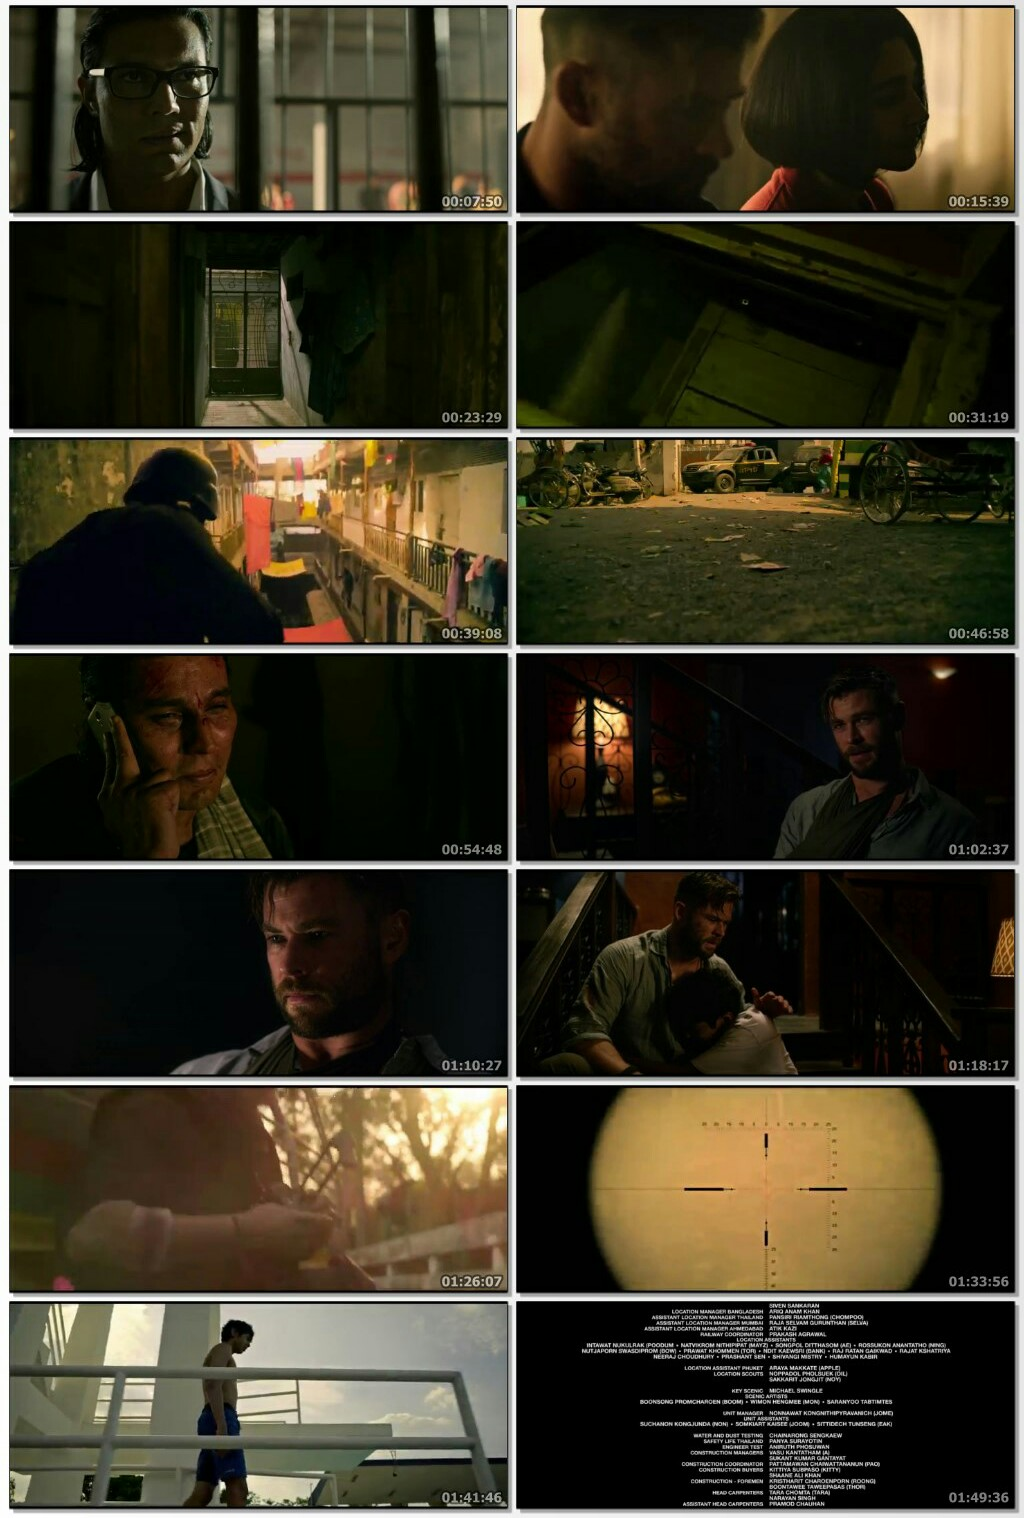 Extraction Full Movie Download In Hindi 720p is